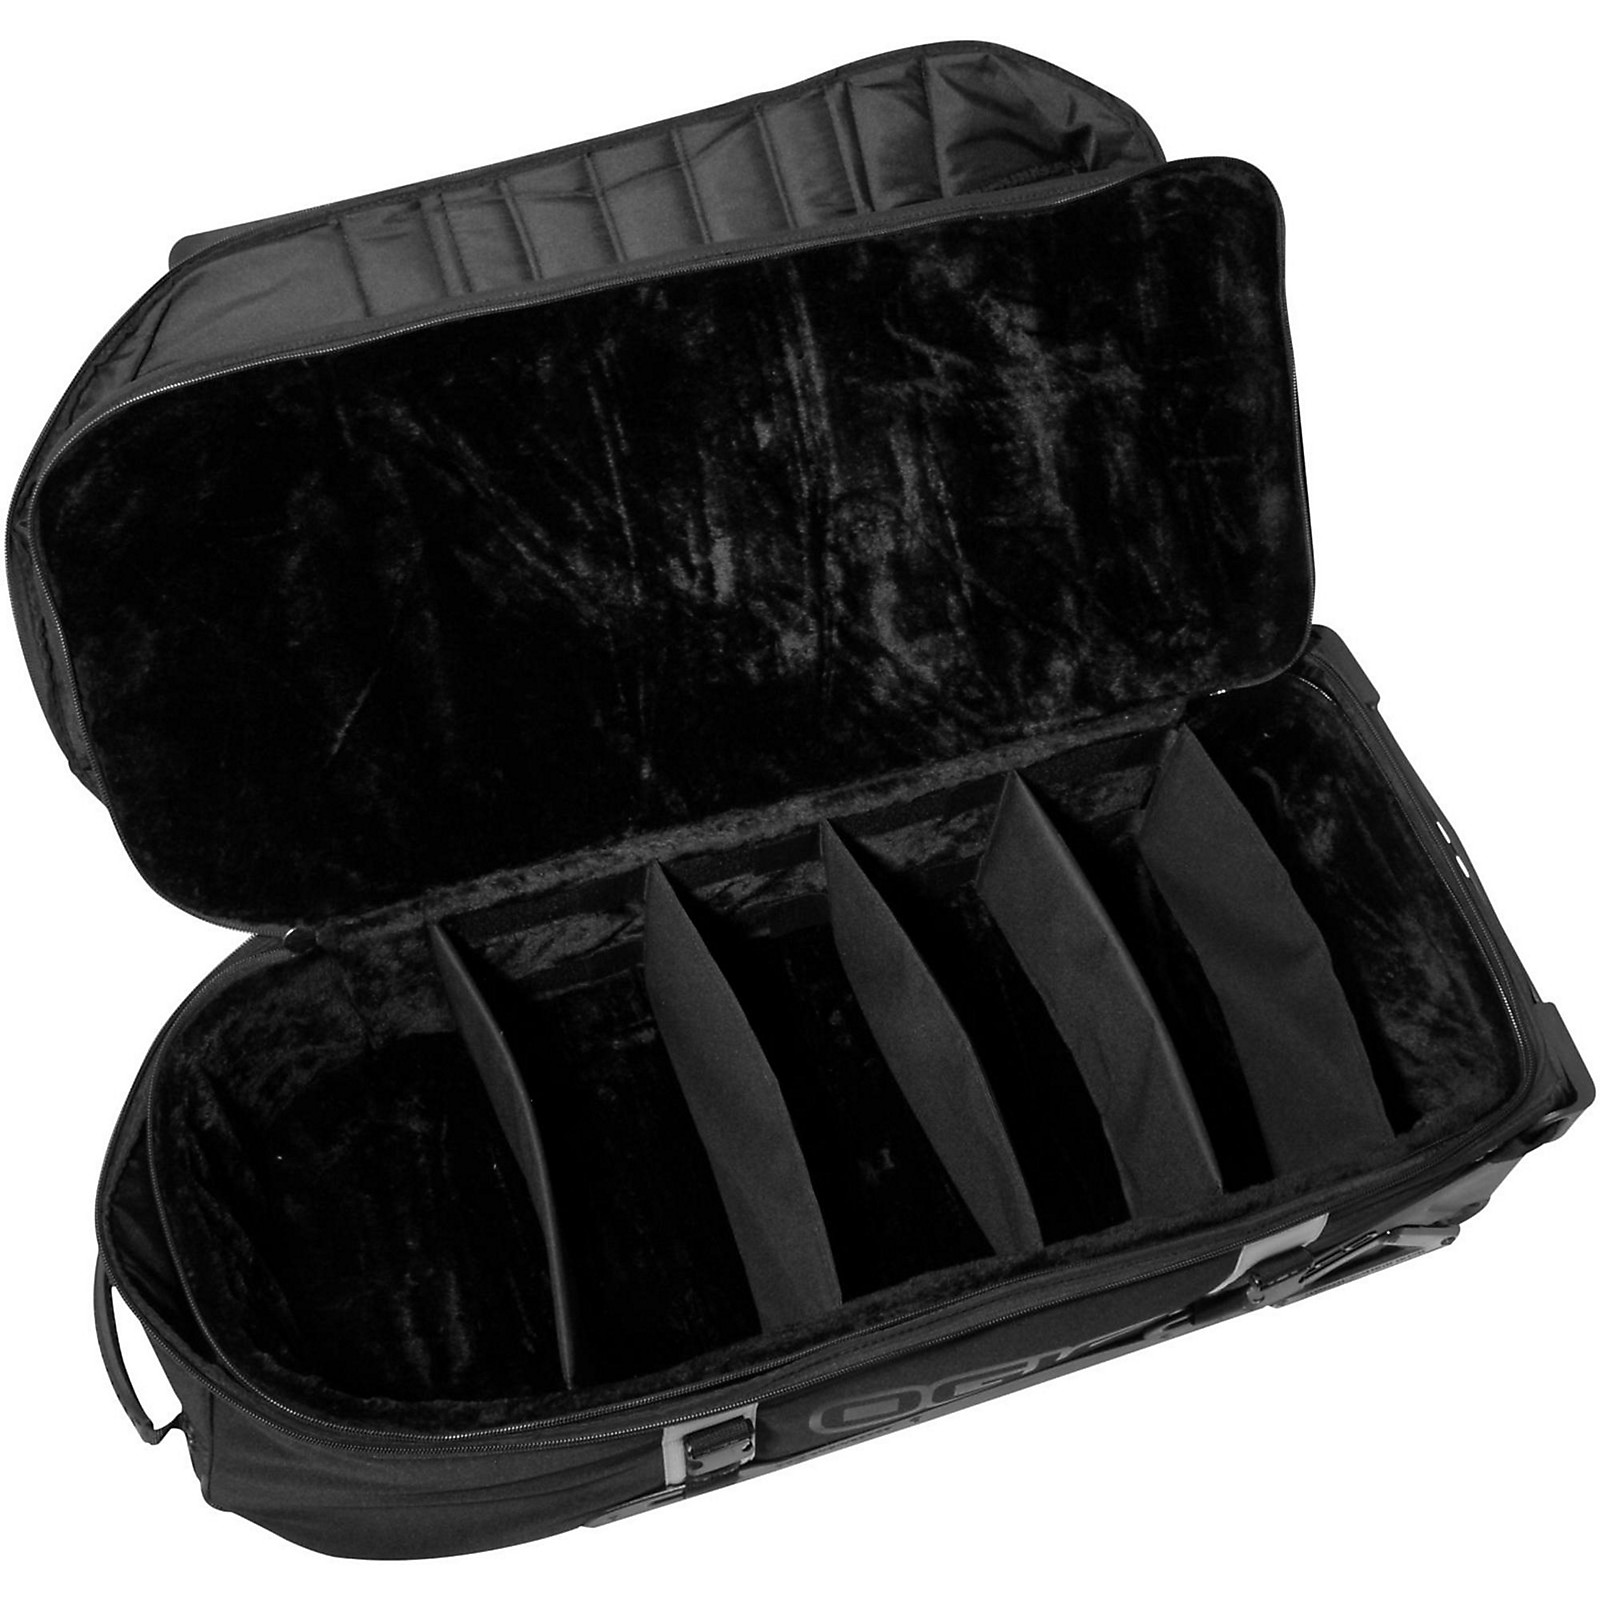 Ahead Armor Cases Adjustable Padded Insert Case for Electronic Pads and Components